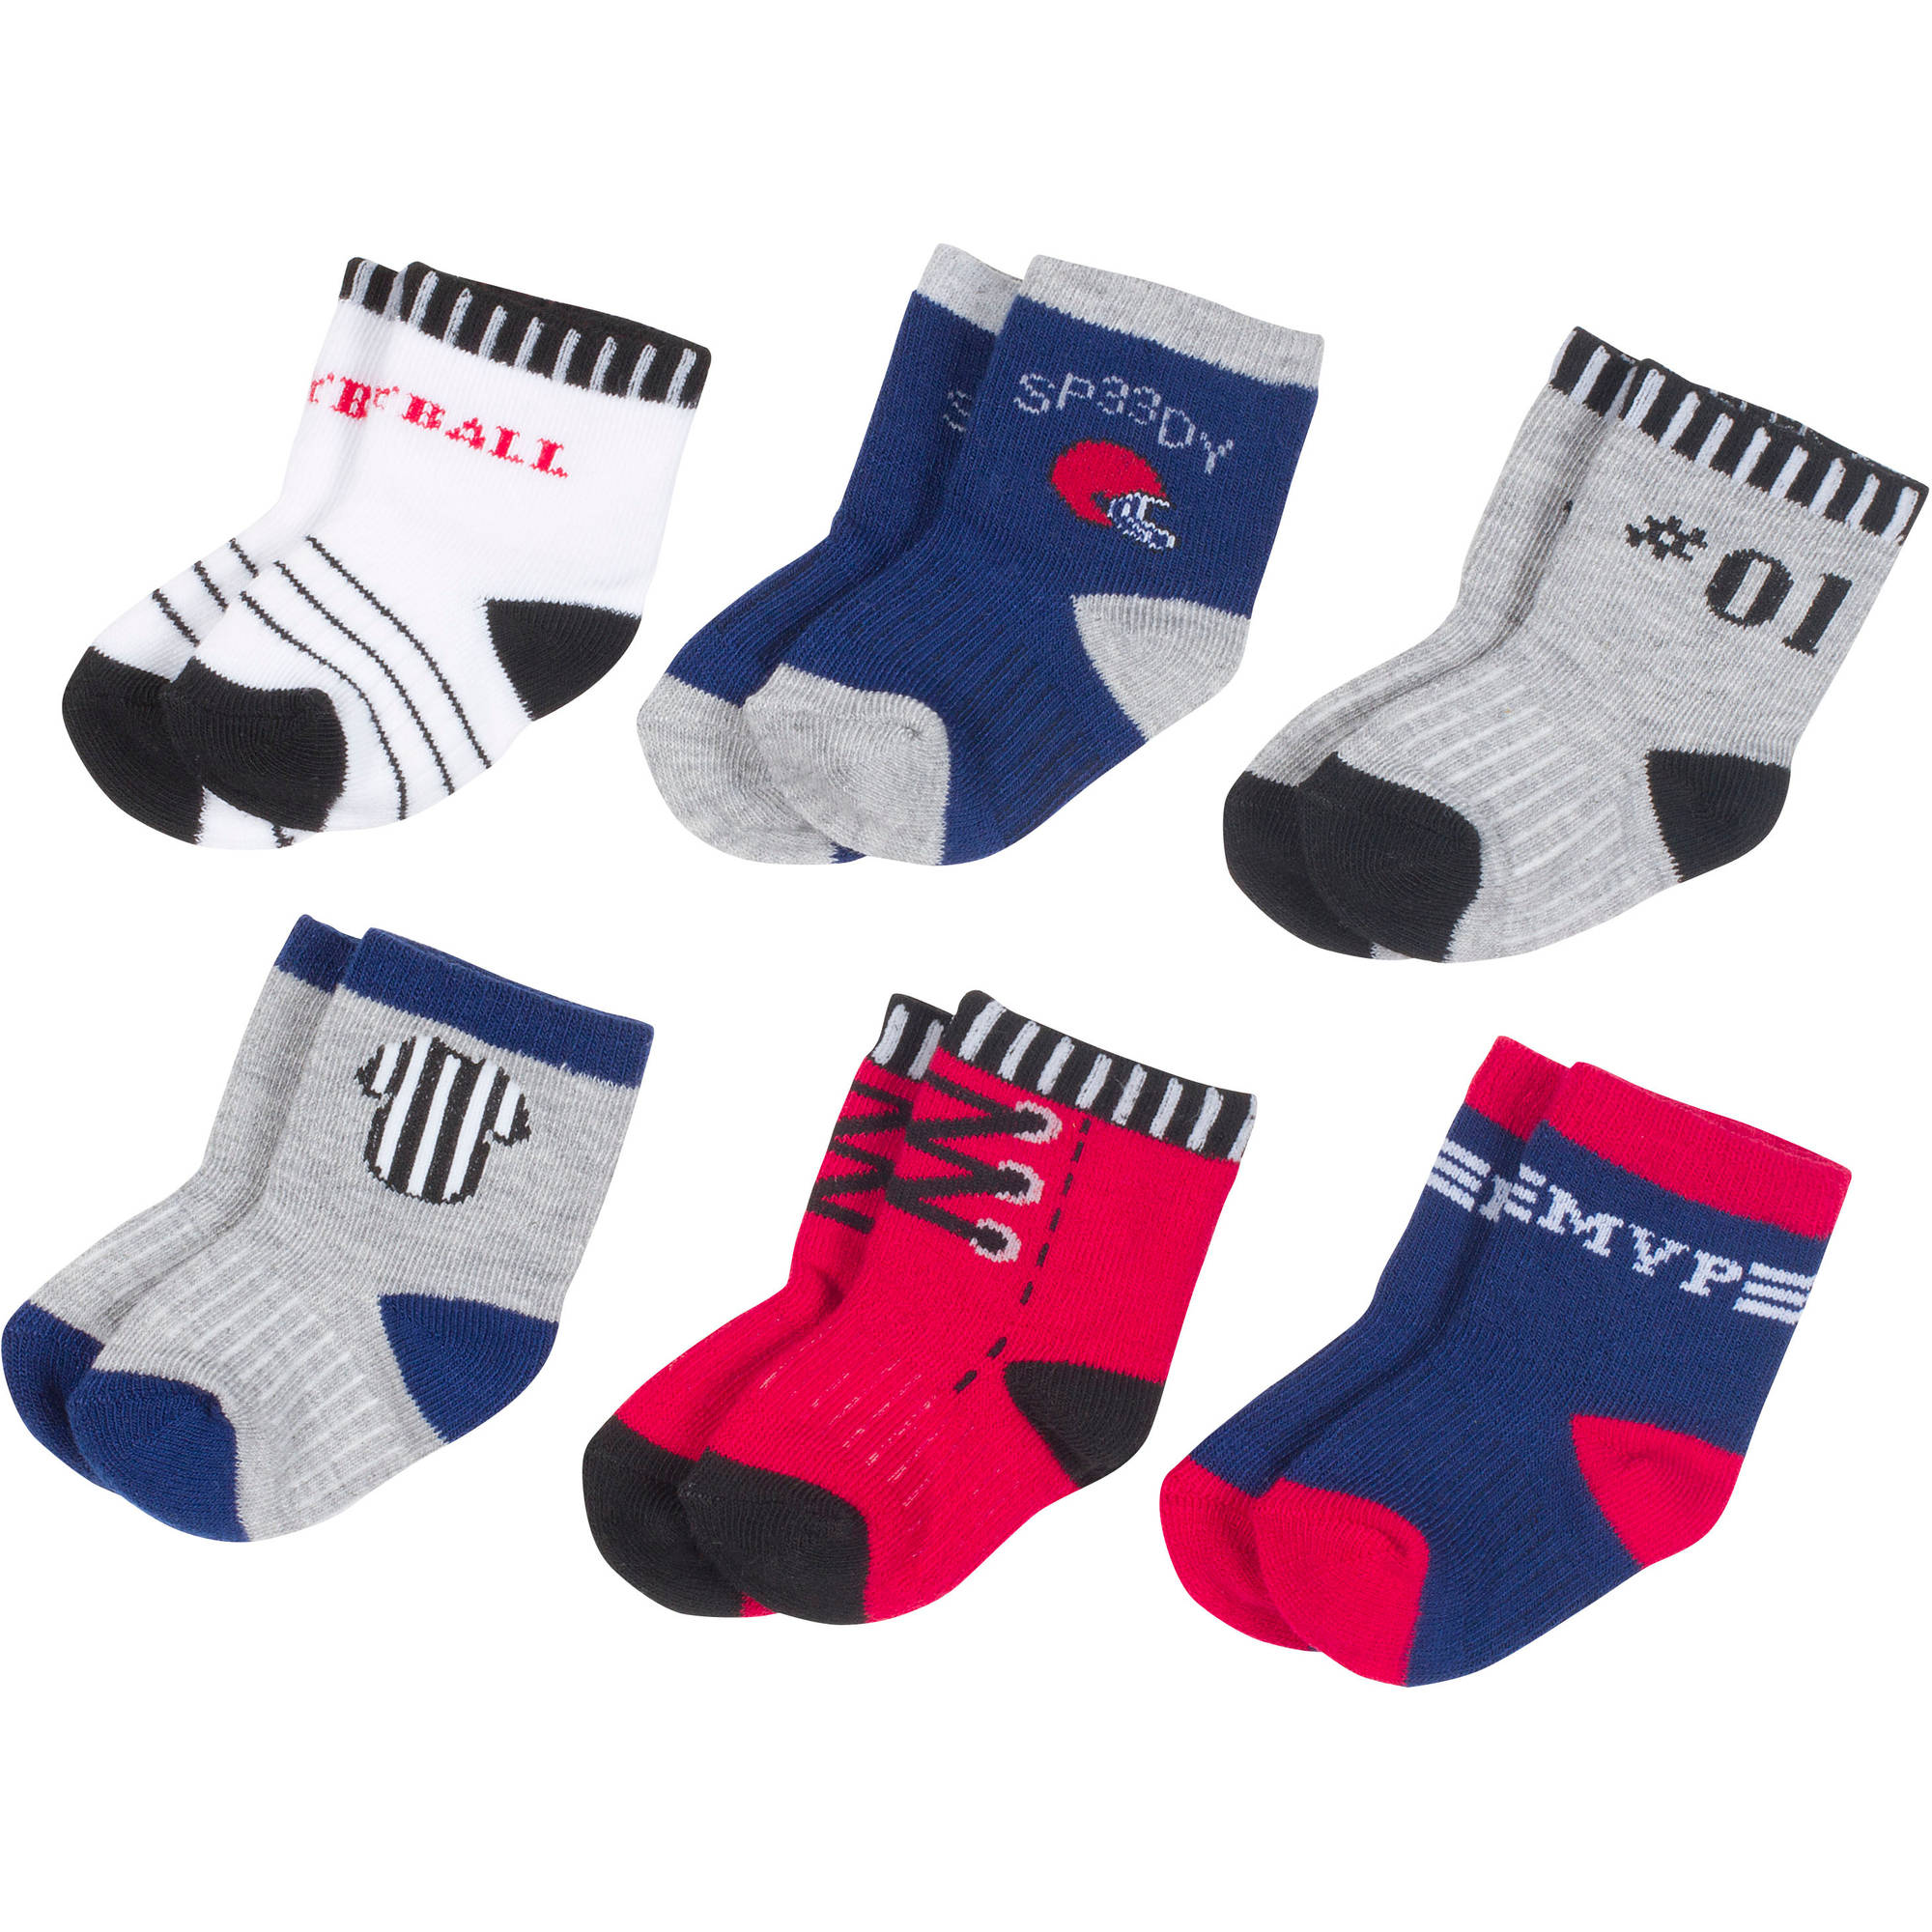 Growing Socks by Peds, Boy Infant, Play Ball, 6 Pairs